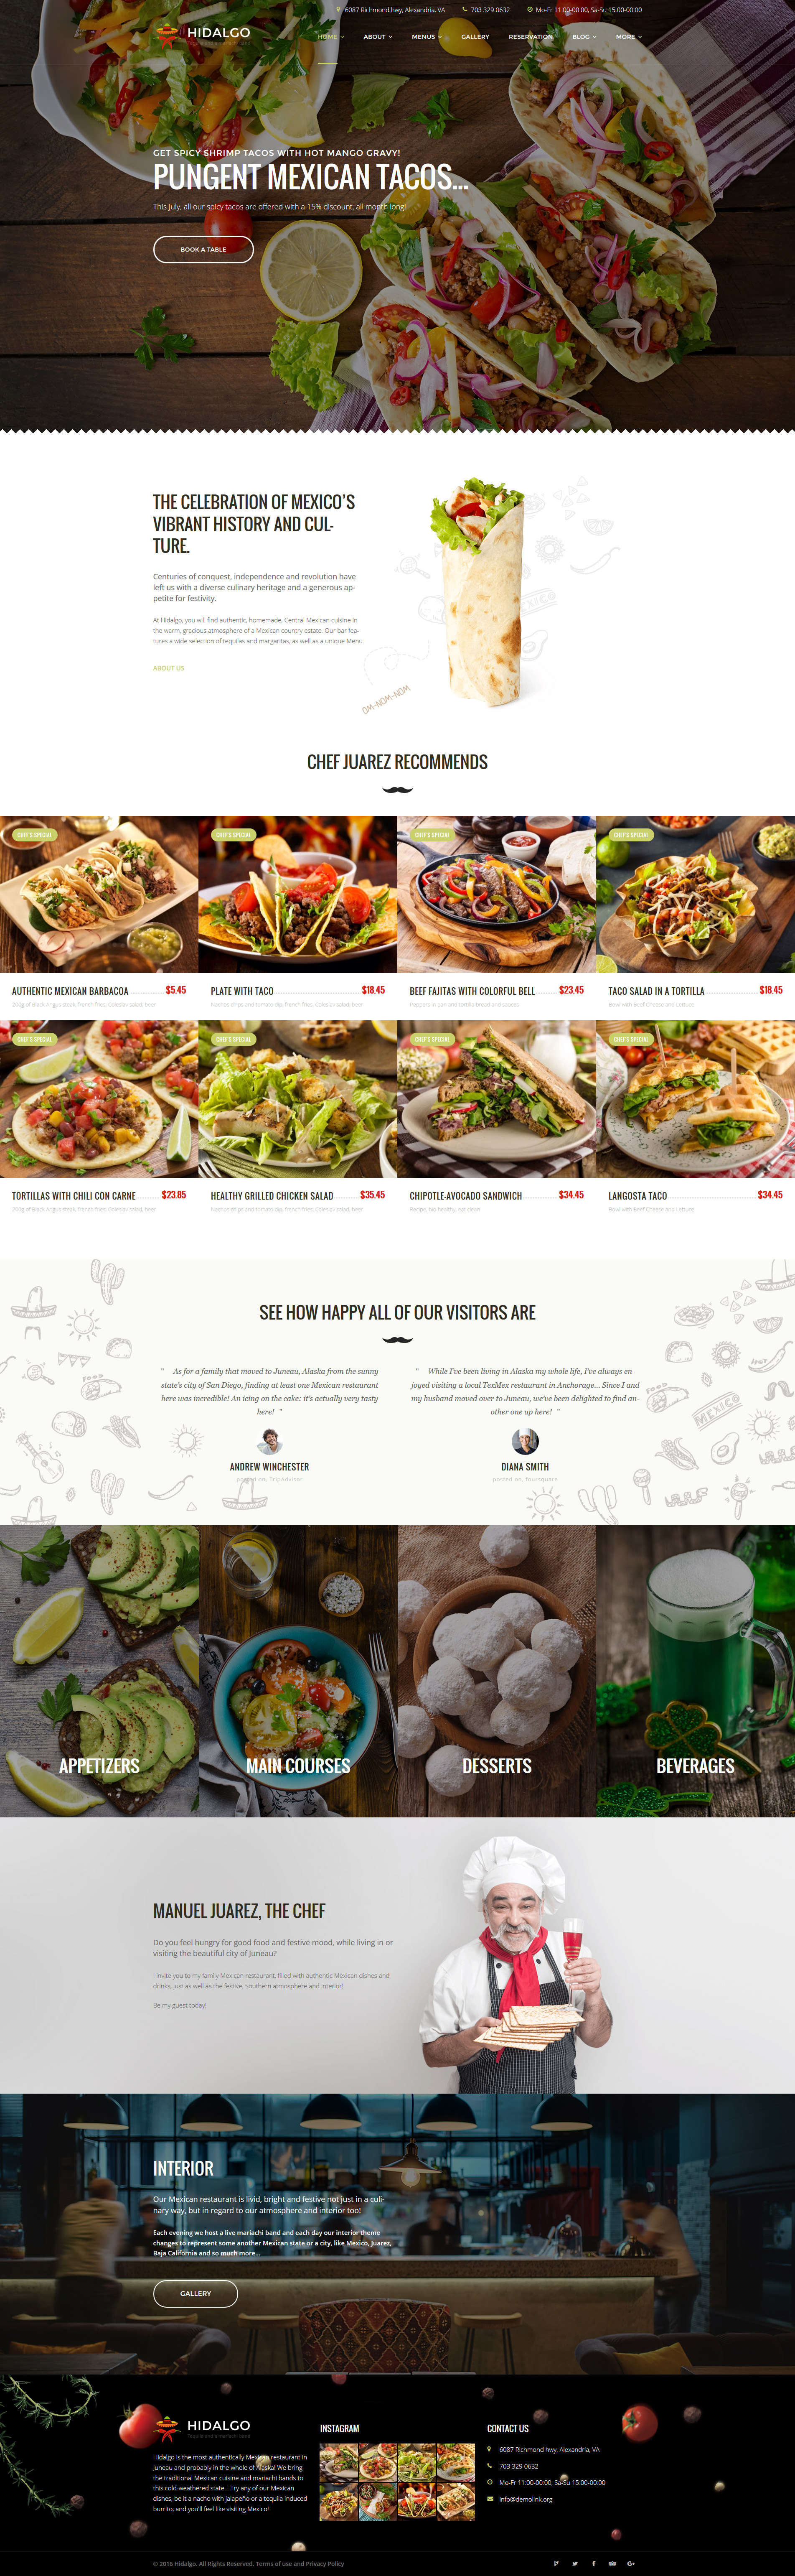 Hidalgo - Mexican Food Restaurant WordPress Theme